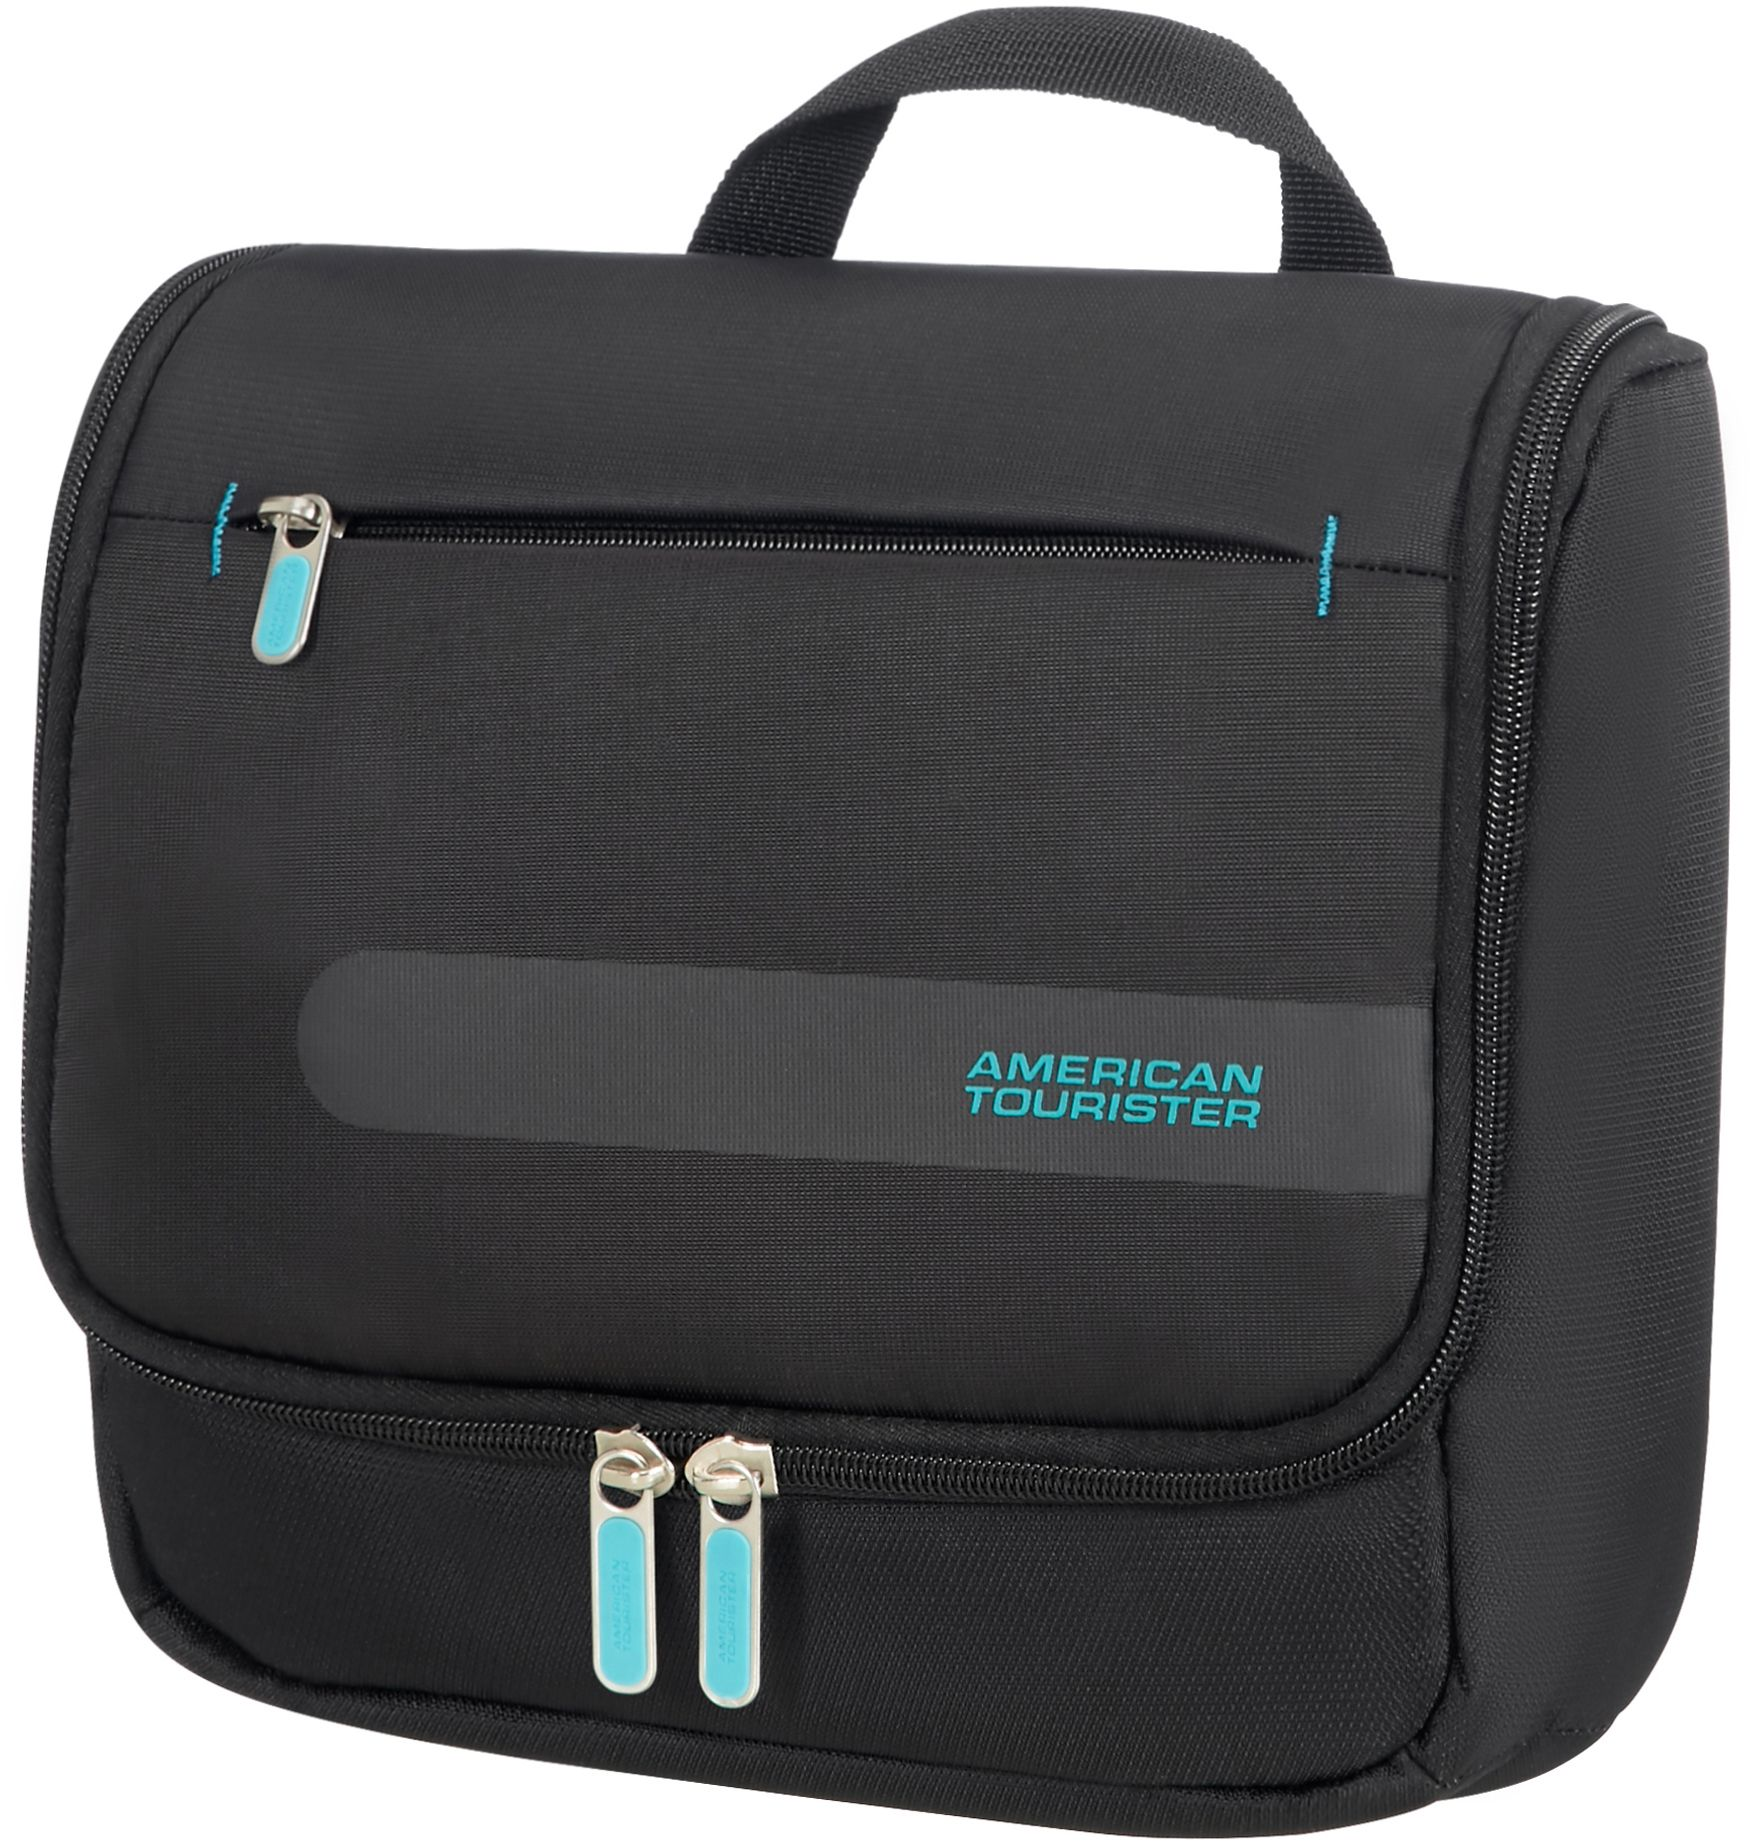 AMERICAN TOURISTER American Tourister Beauty Case, »Herolite Hanging Toiletkit«